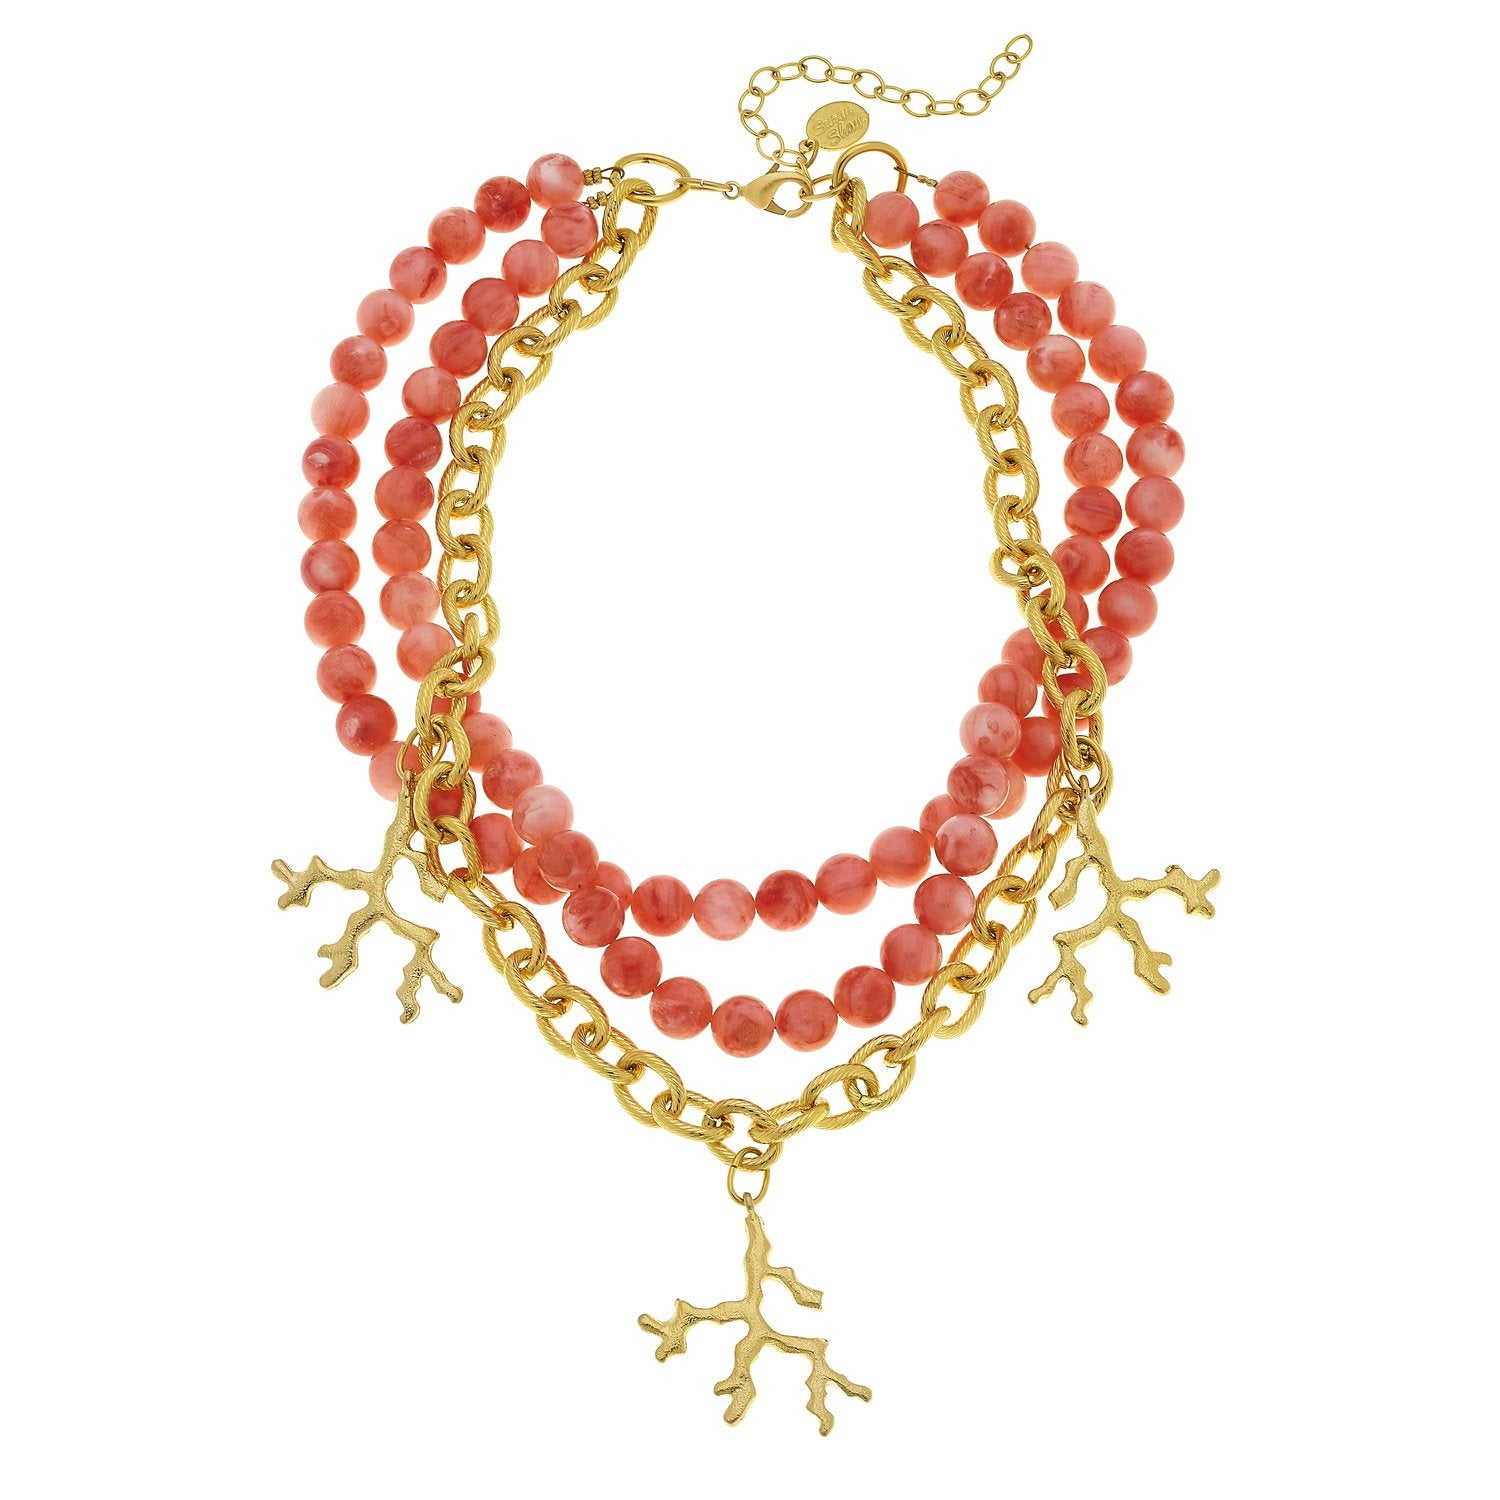 Gold Coral with Multi-Strand Pink Coral Necklace